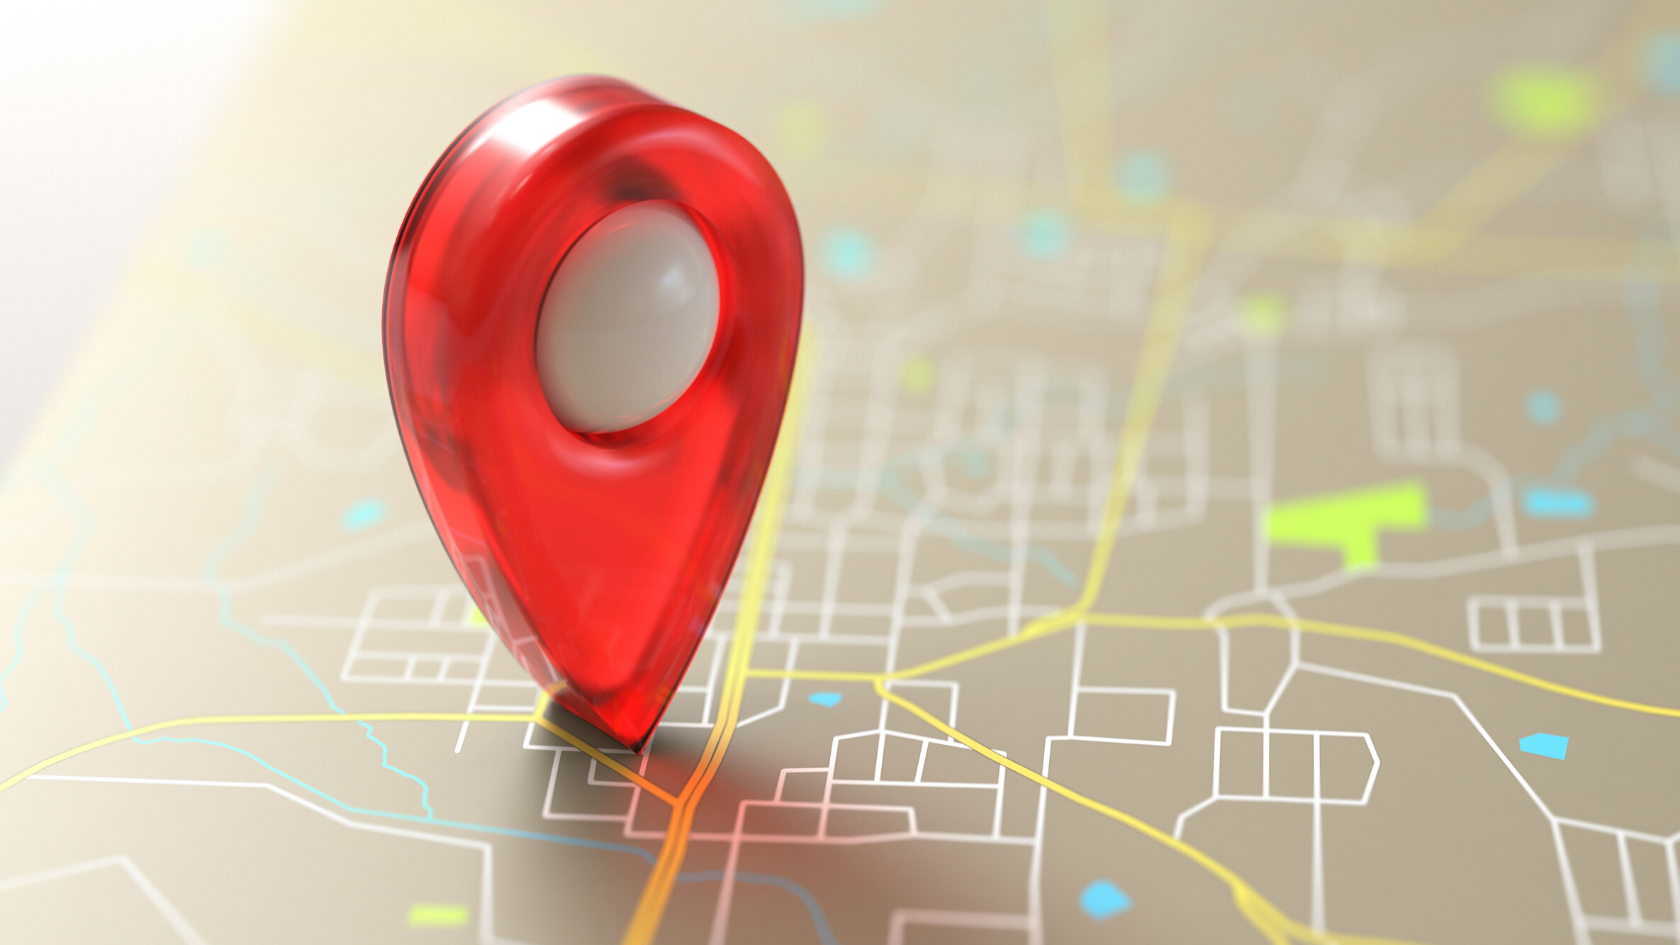 Location Analytics: What Can It Reveal?